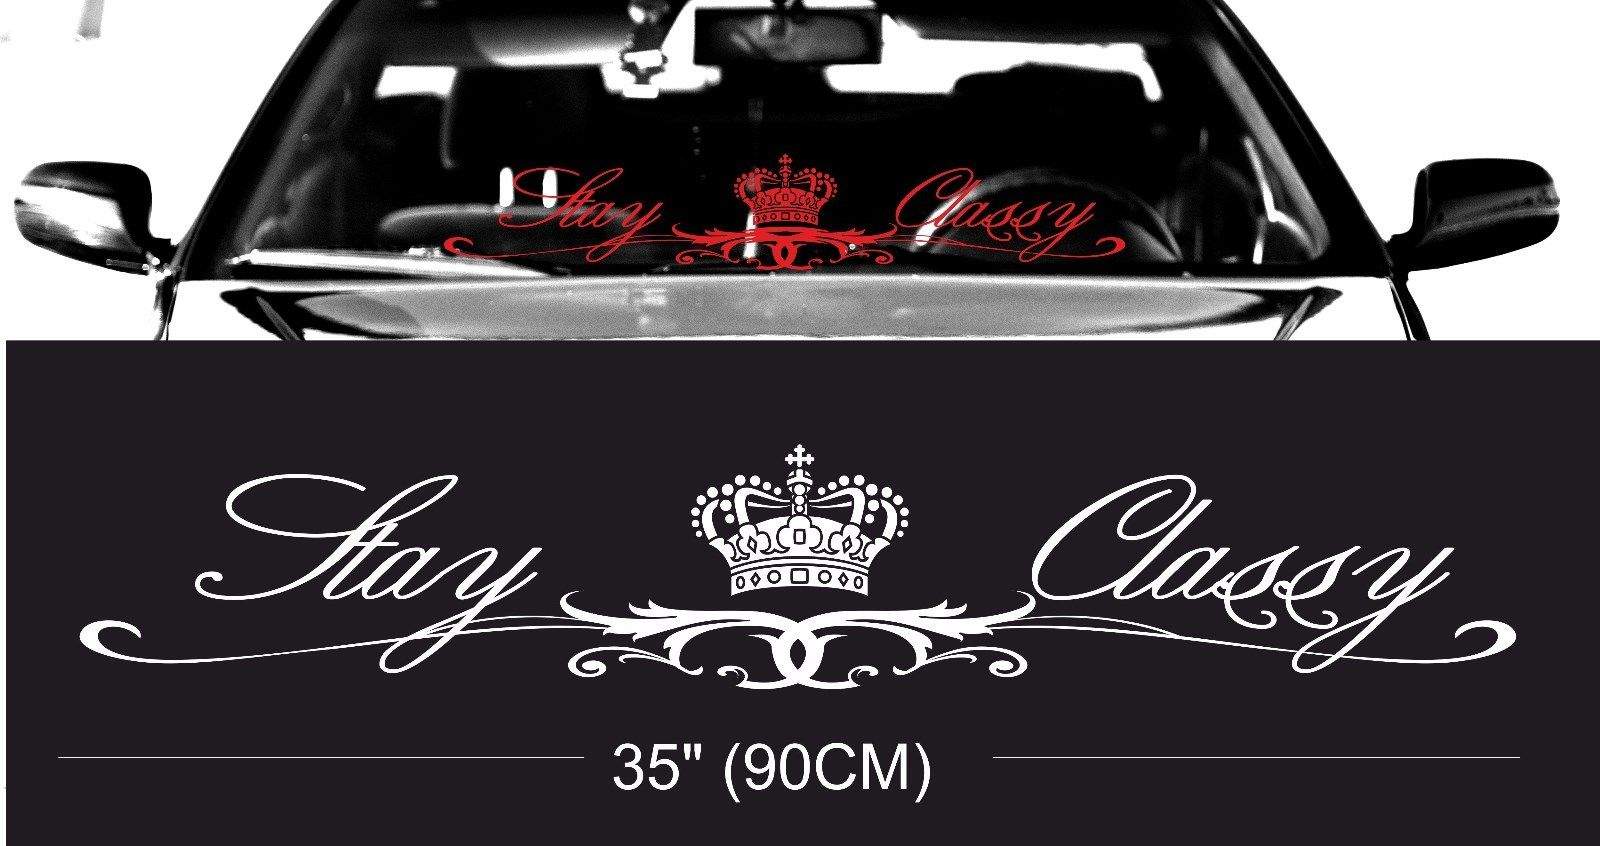 Car Windshield Decals PromotionShop For Promotional Car - Promotional car window decals